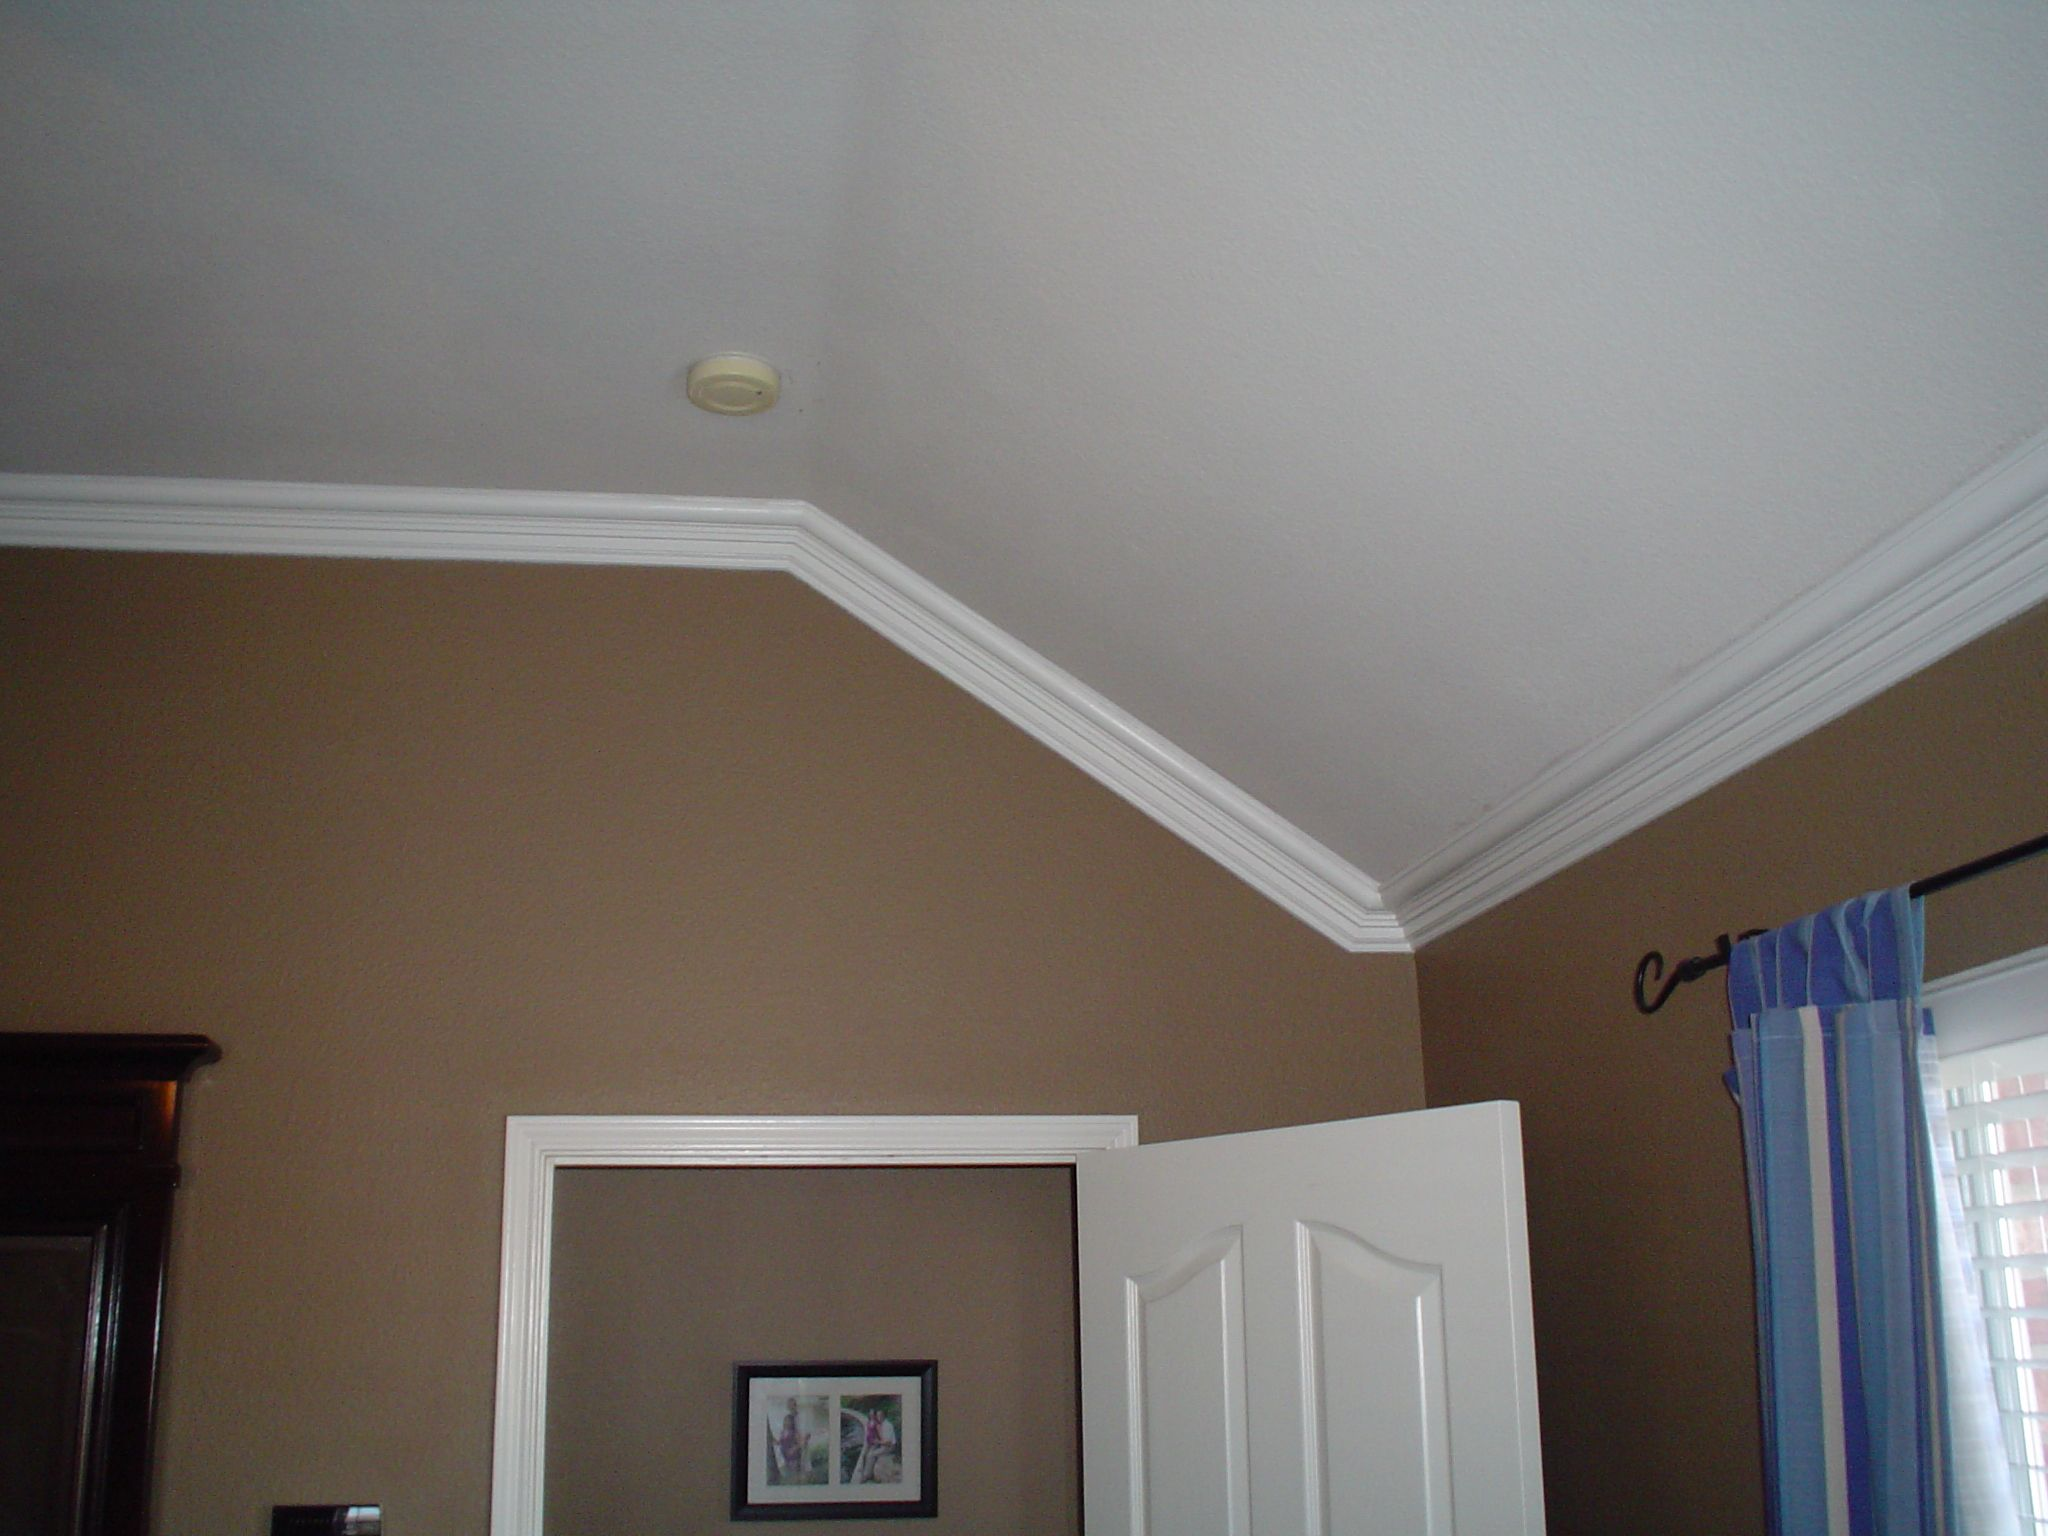 Bedroom Ceiling Moulding How To Cut Crown Molding For Sloped Ceiling Inspiration